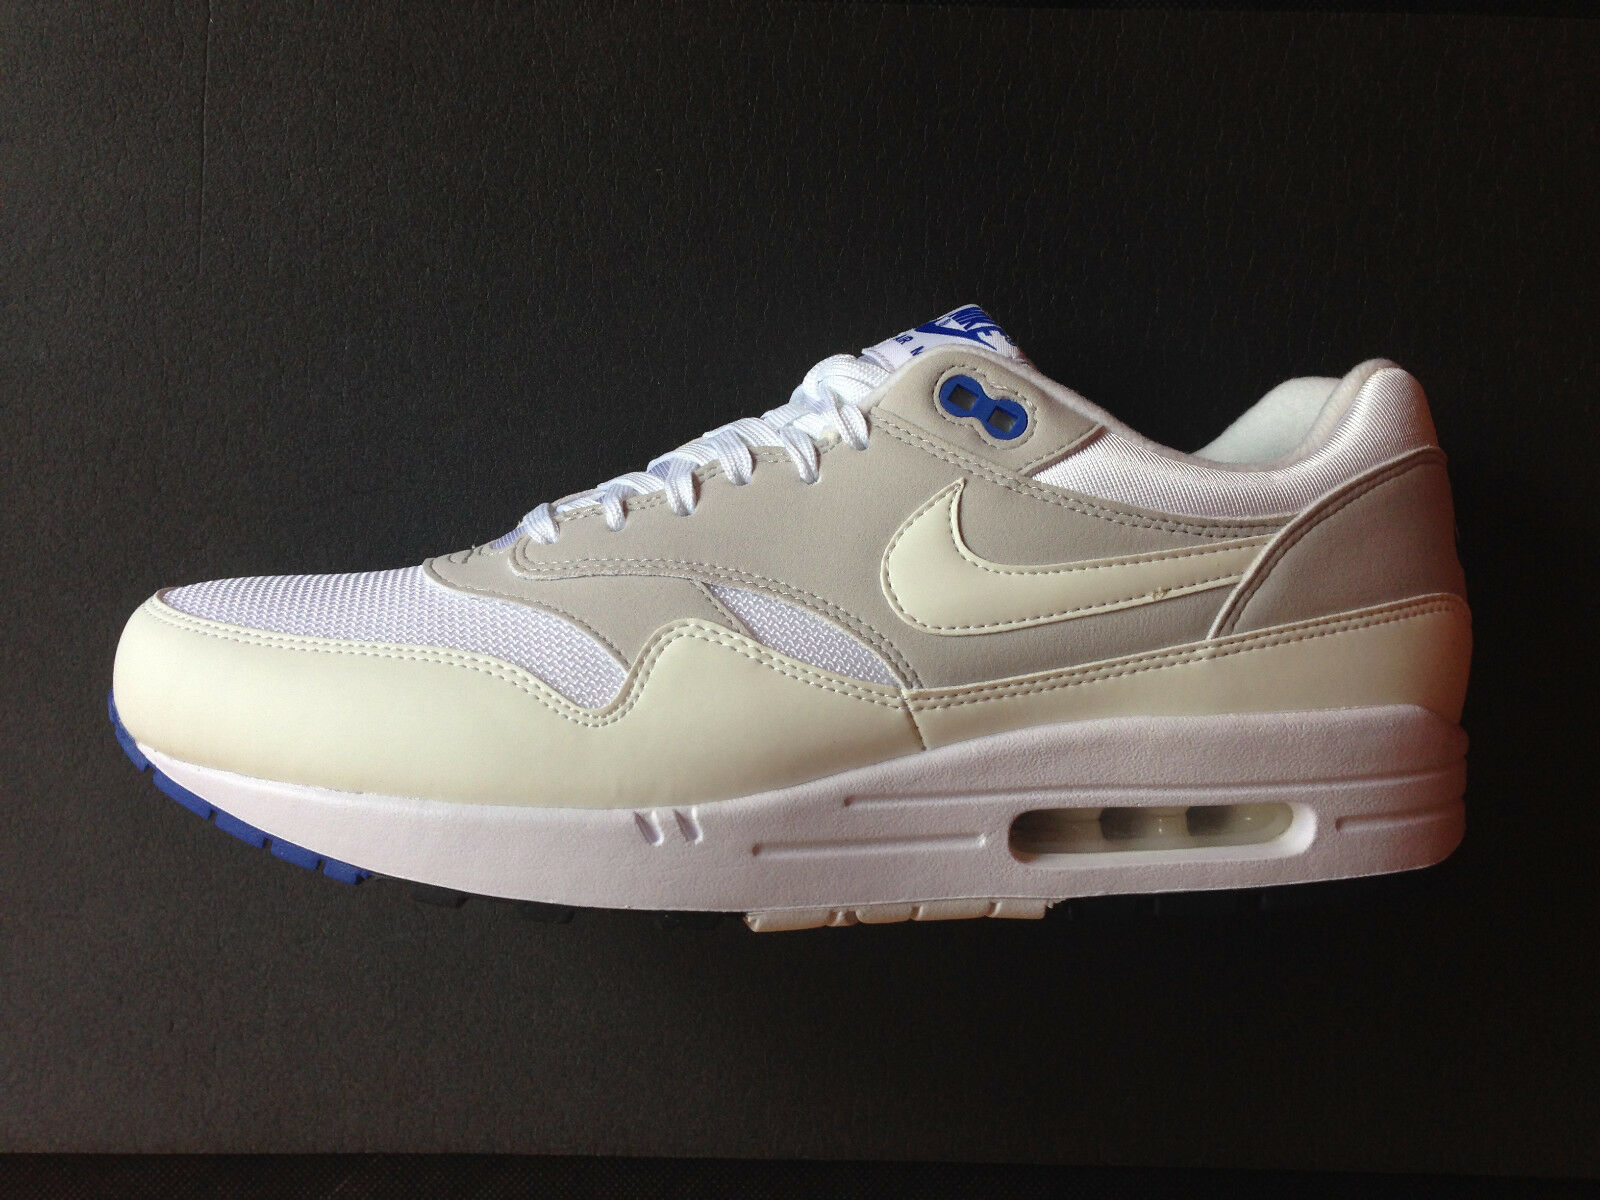 Nike Air Max 1 CX QS Quickstrike UV-Colour Change neu US 12